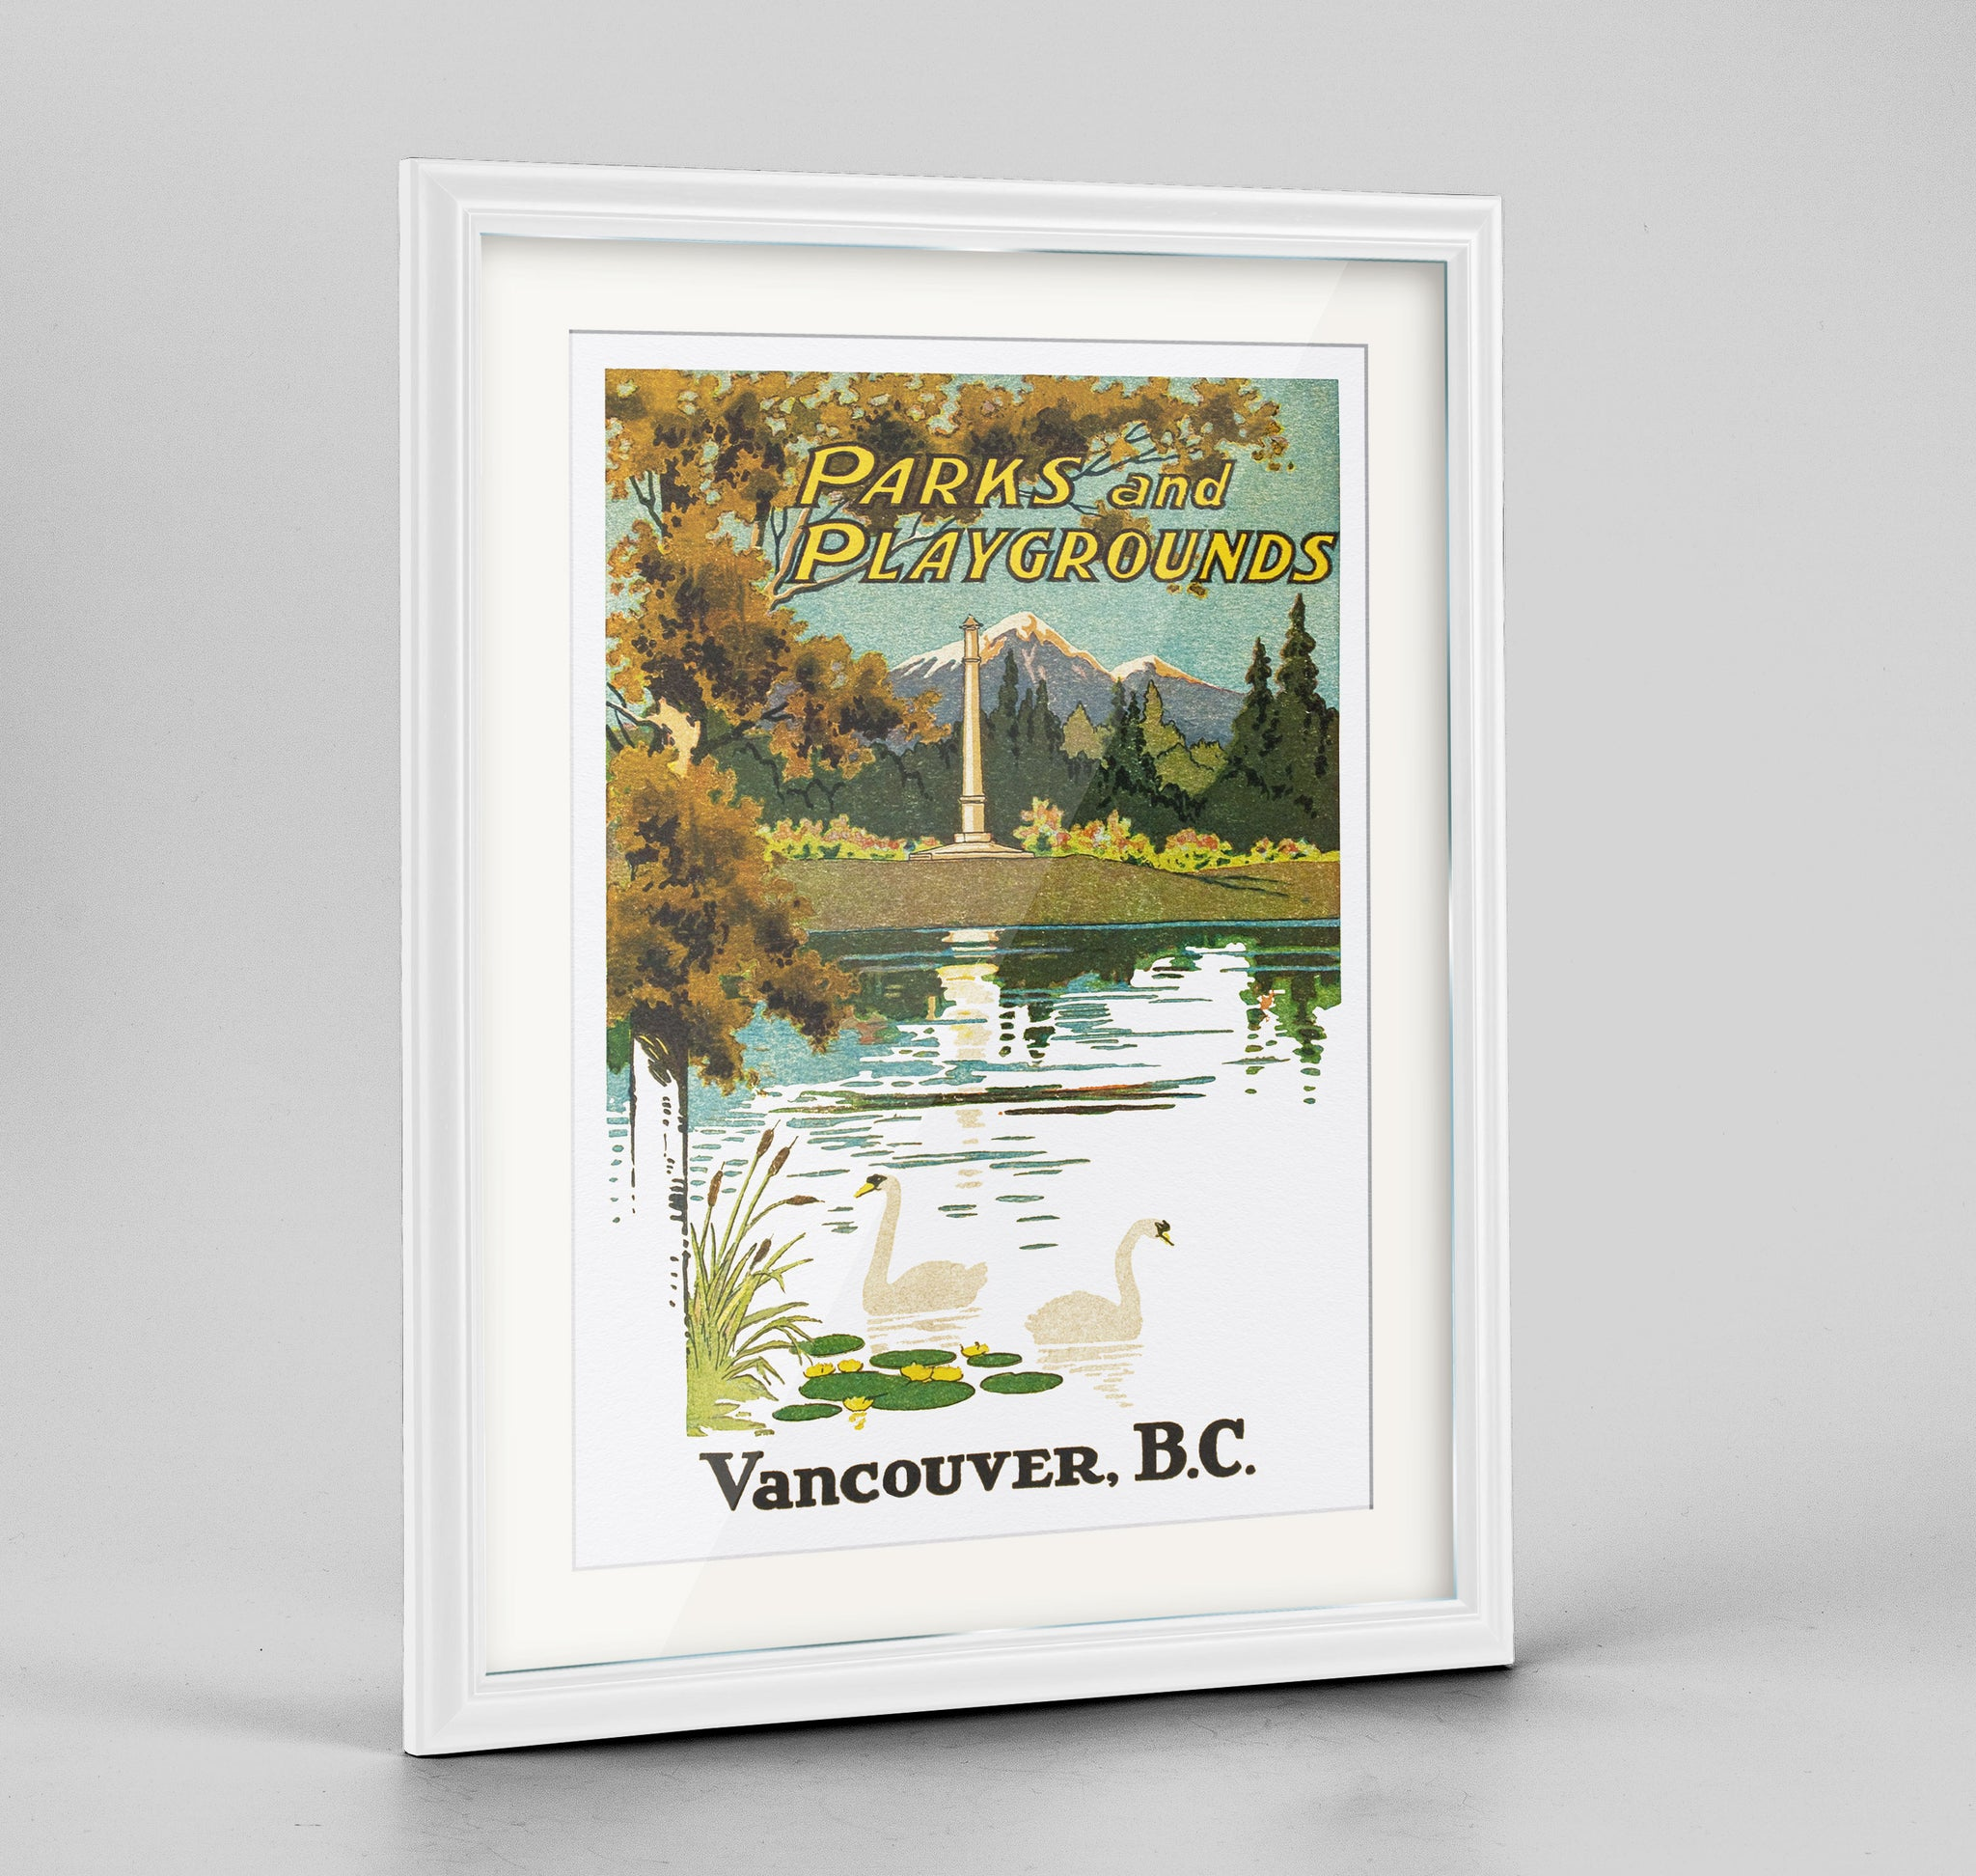 Museum of Vancouver archival art prints for purchase